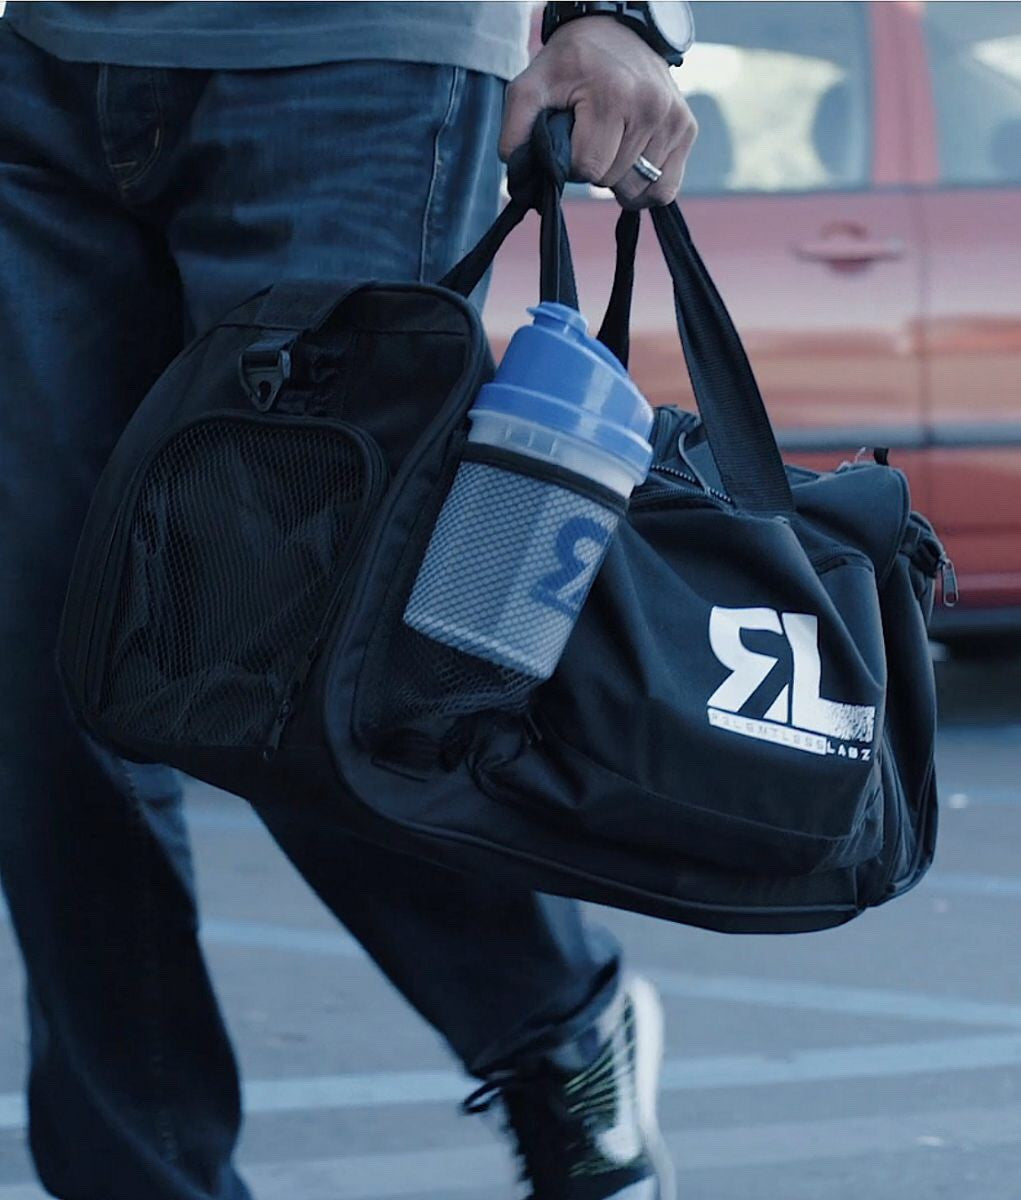 Relentless Labz: Gym Bag